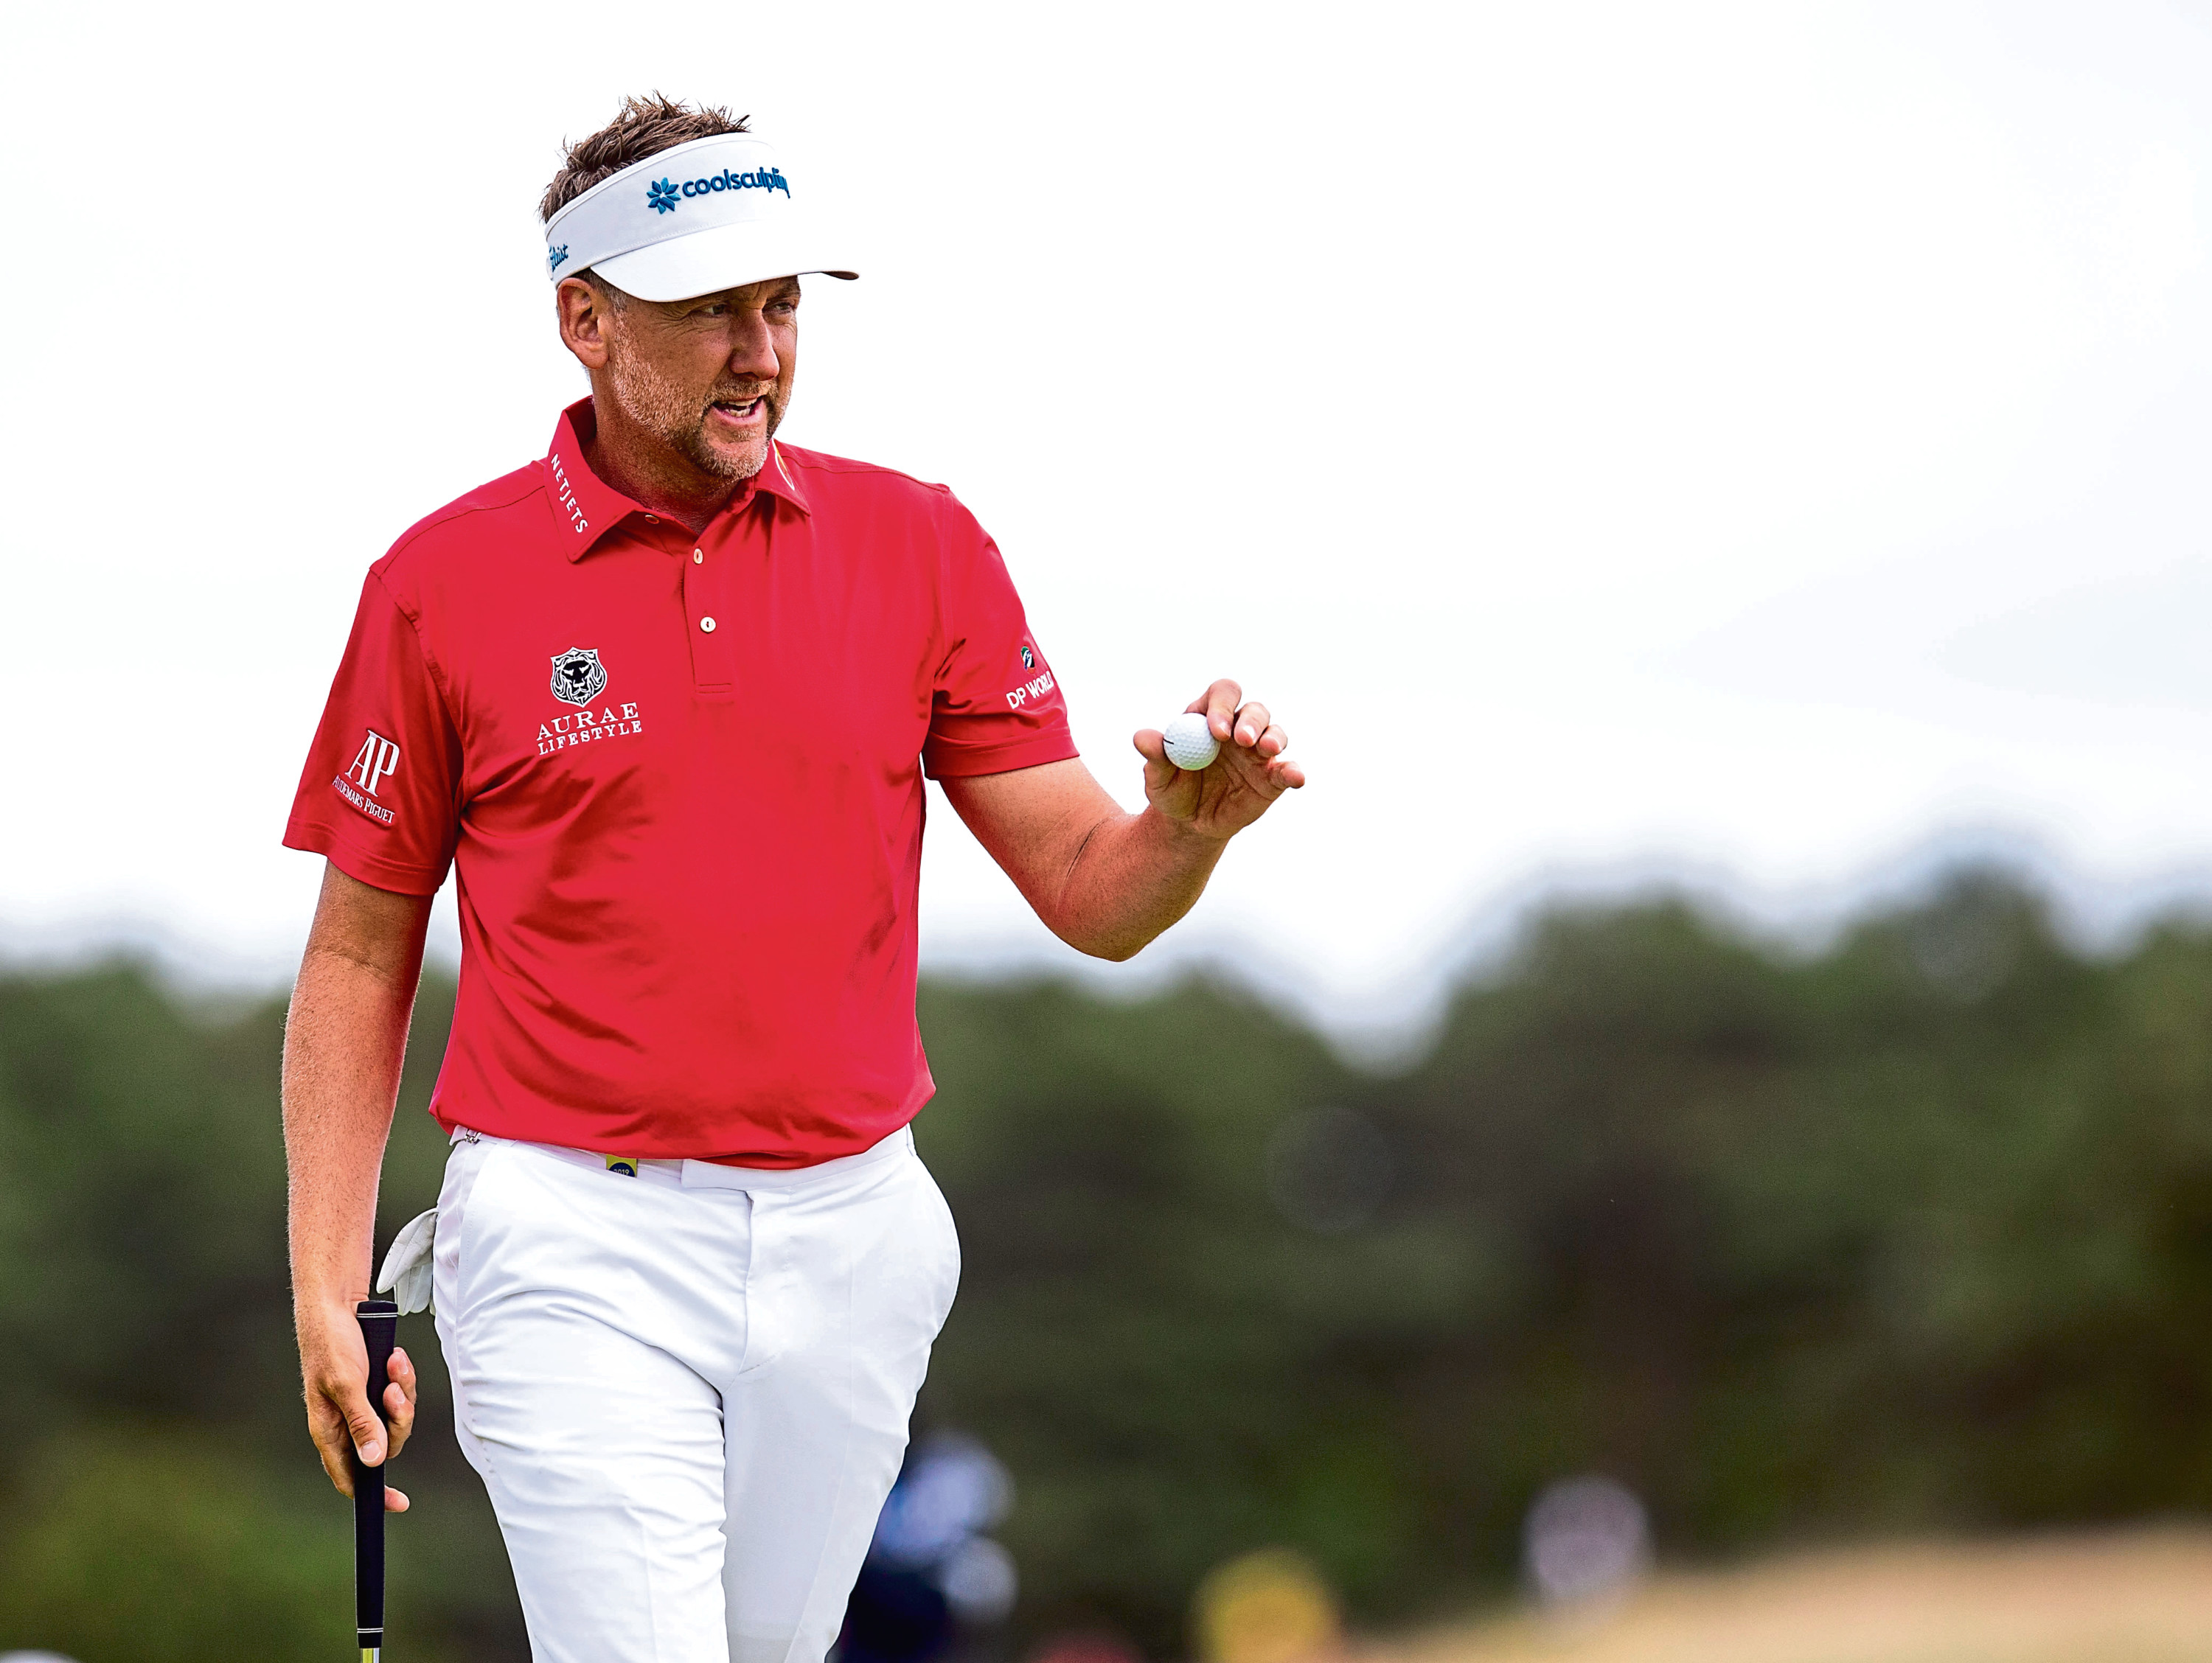 11/07/19 ABERDEEN STANDARD INVESTMENTS (SCOTTISH OPEN) DAY TWO THE RENAISSANCE CLUB - NORTH BERWICK Ian Poulter in action on Day 2 of the Aberdeen Standard Investments Scottish Open.